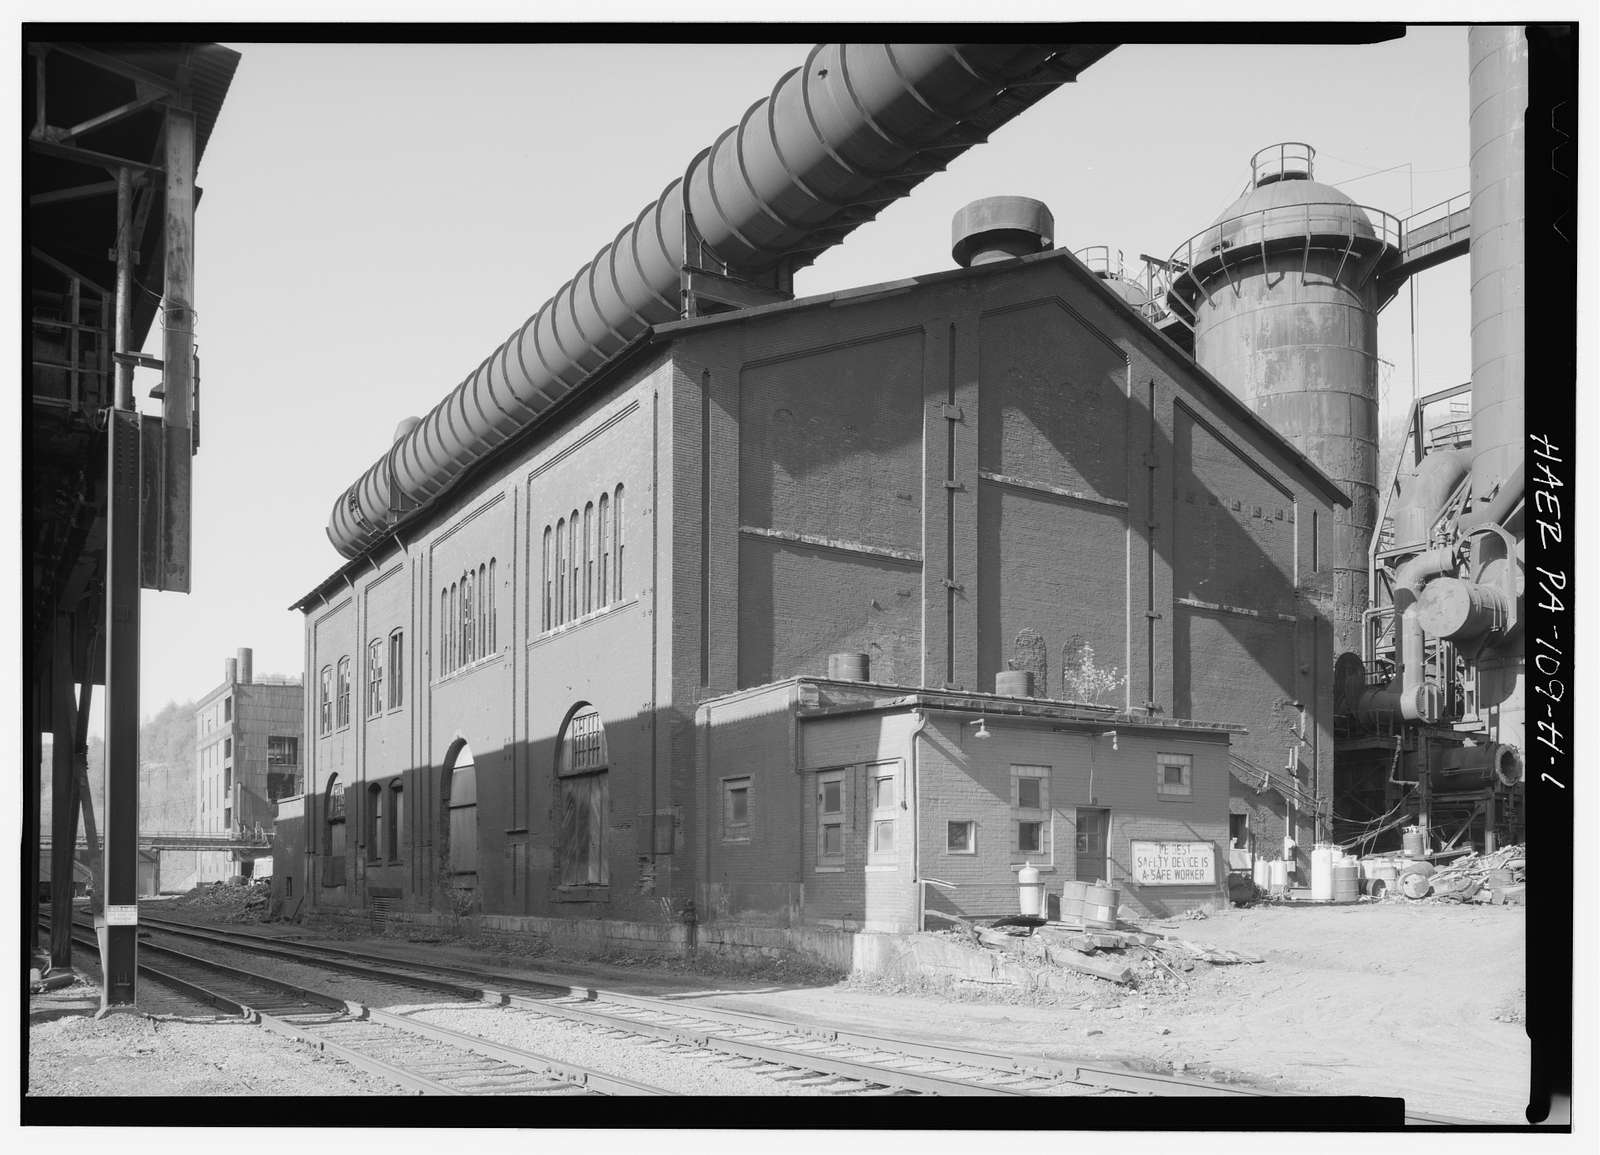 Cambria Iron Company, Blast Furnaces No. 5 & 6 Blowing Engine House, Lower Works, Johnstown, Cambria County, PA